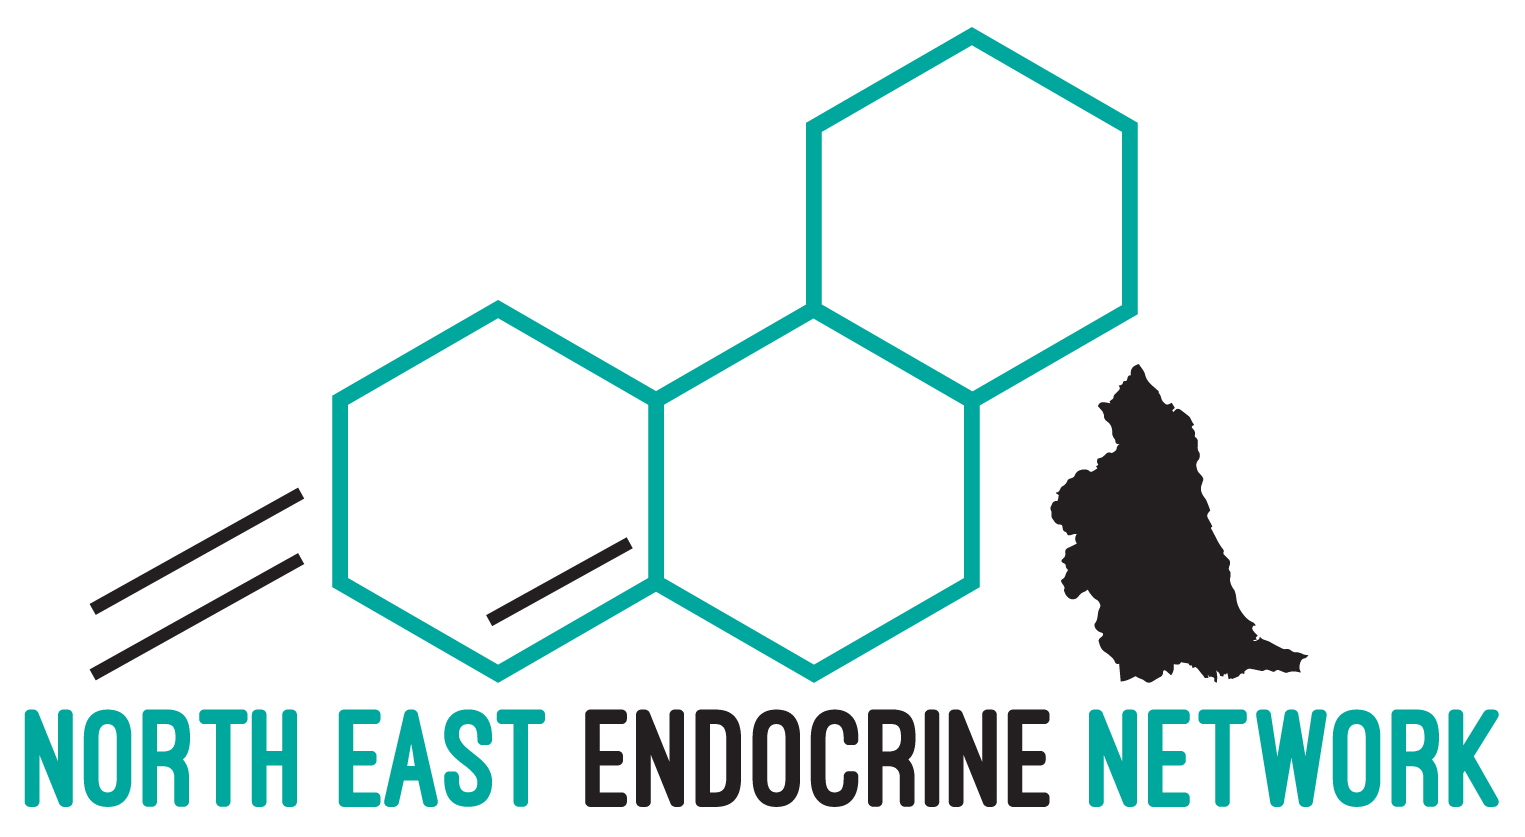 North East Endocrine Network